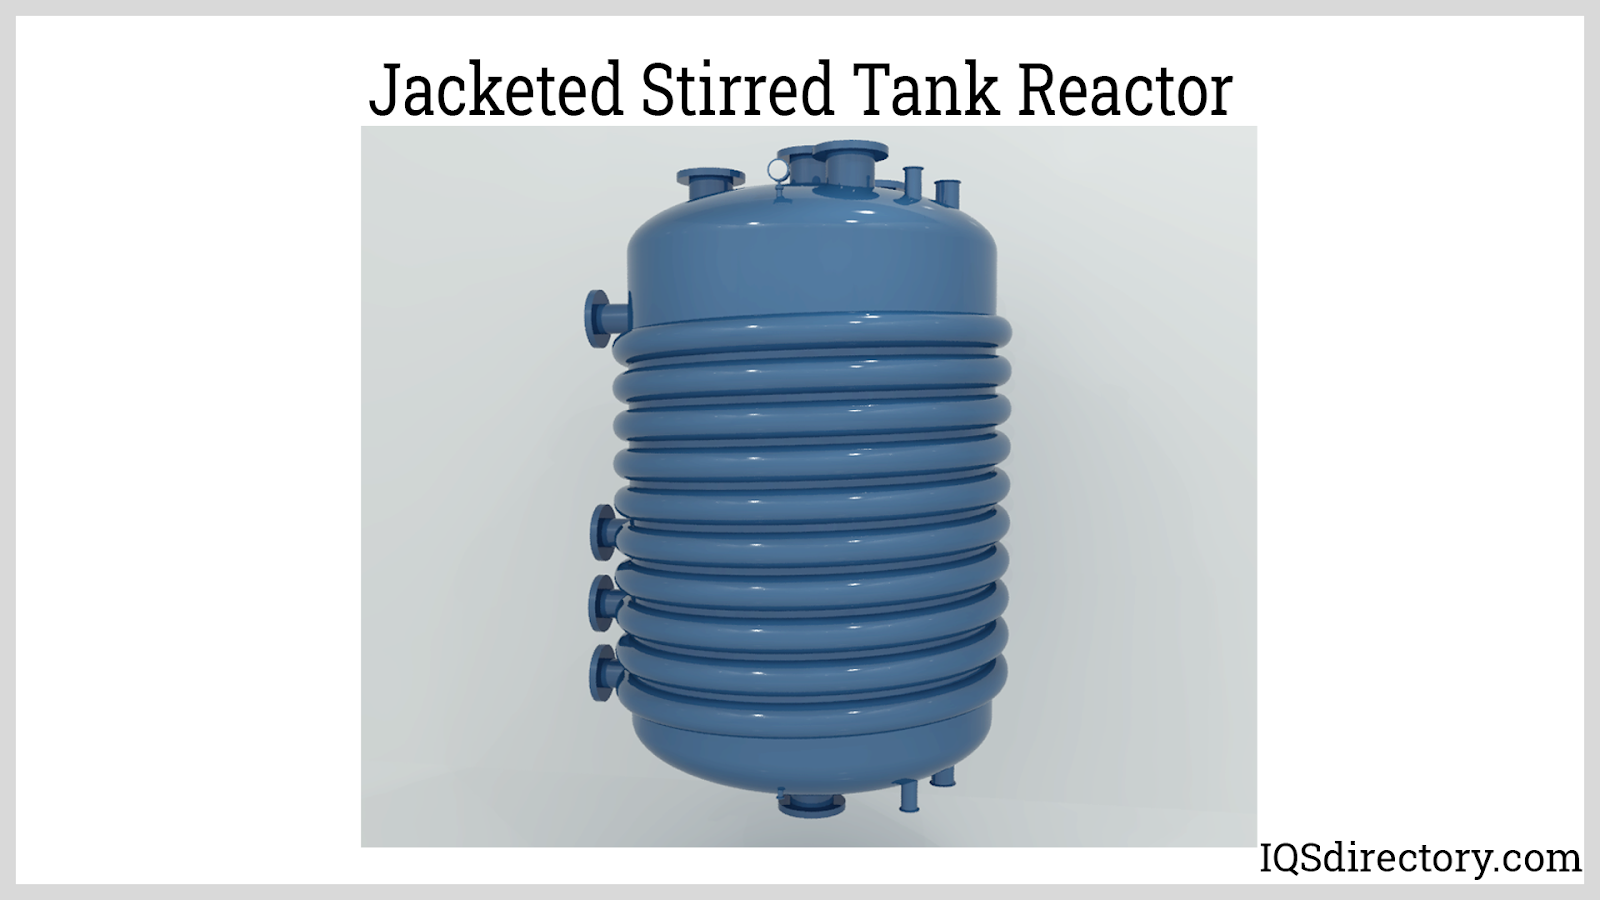 Jacketed Stirred Tank Reactor